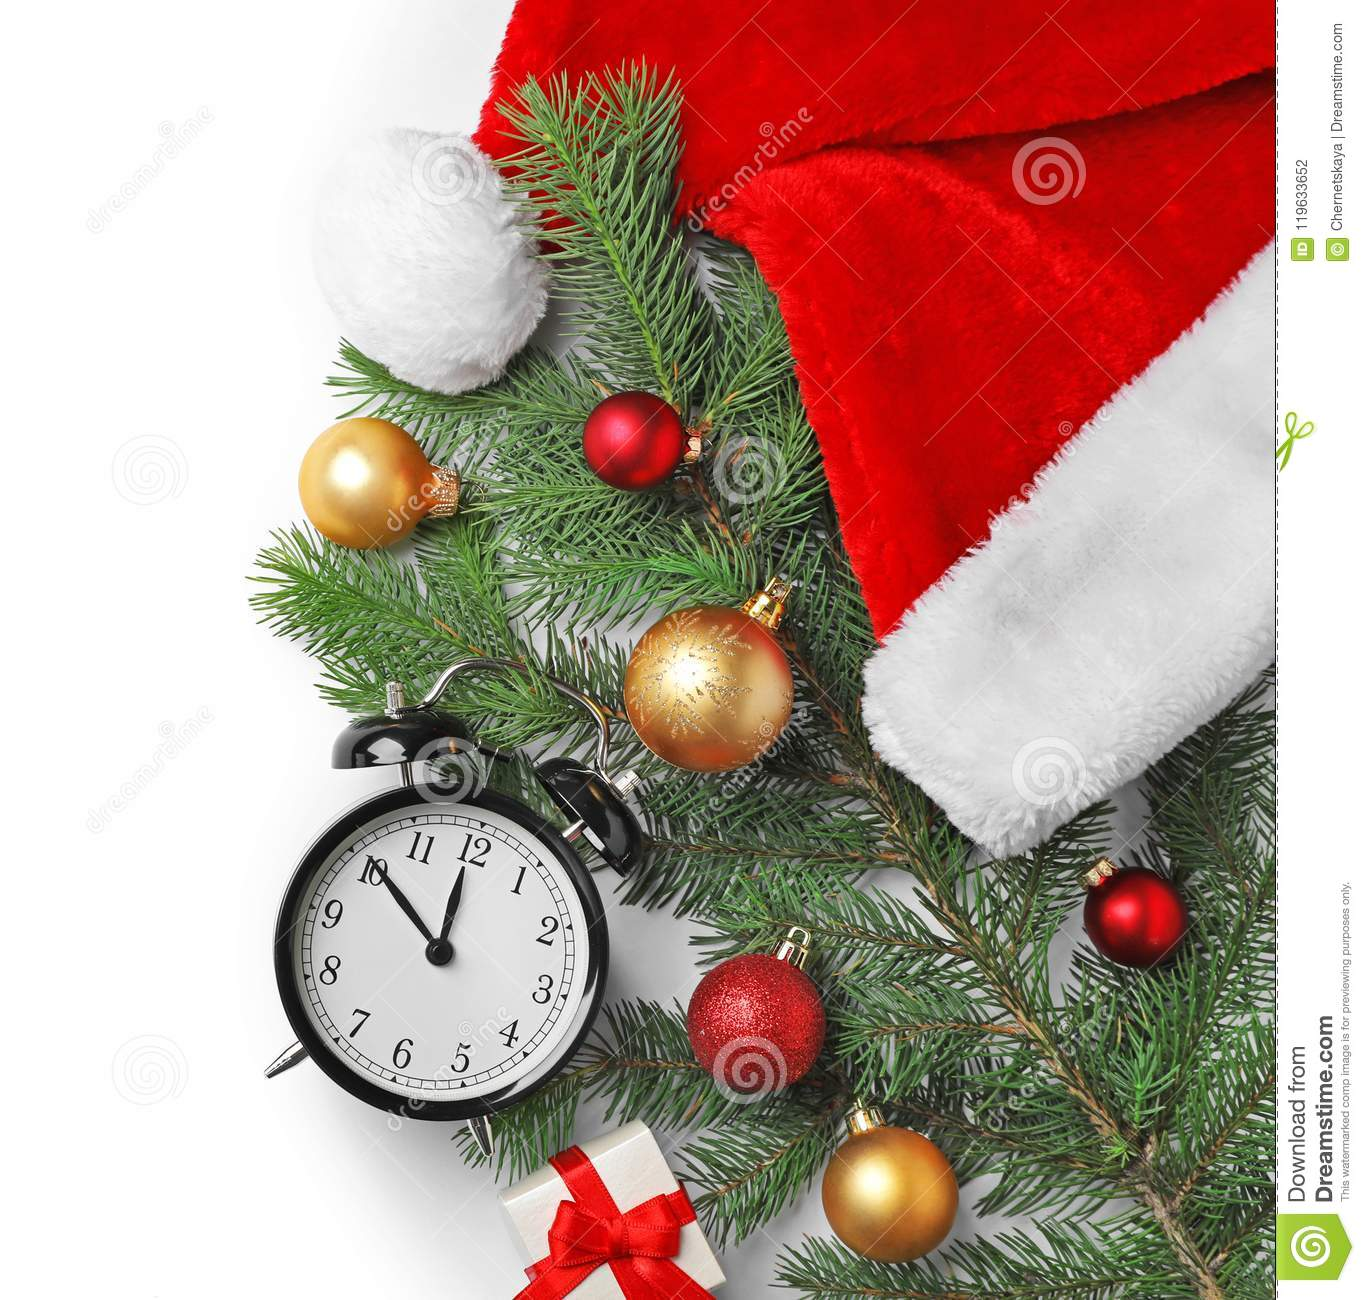 retro alarm clock and decor on white background top view christmas countdown